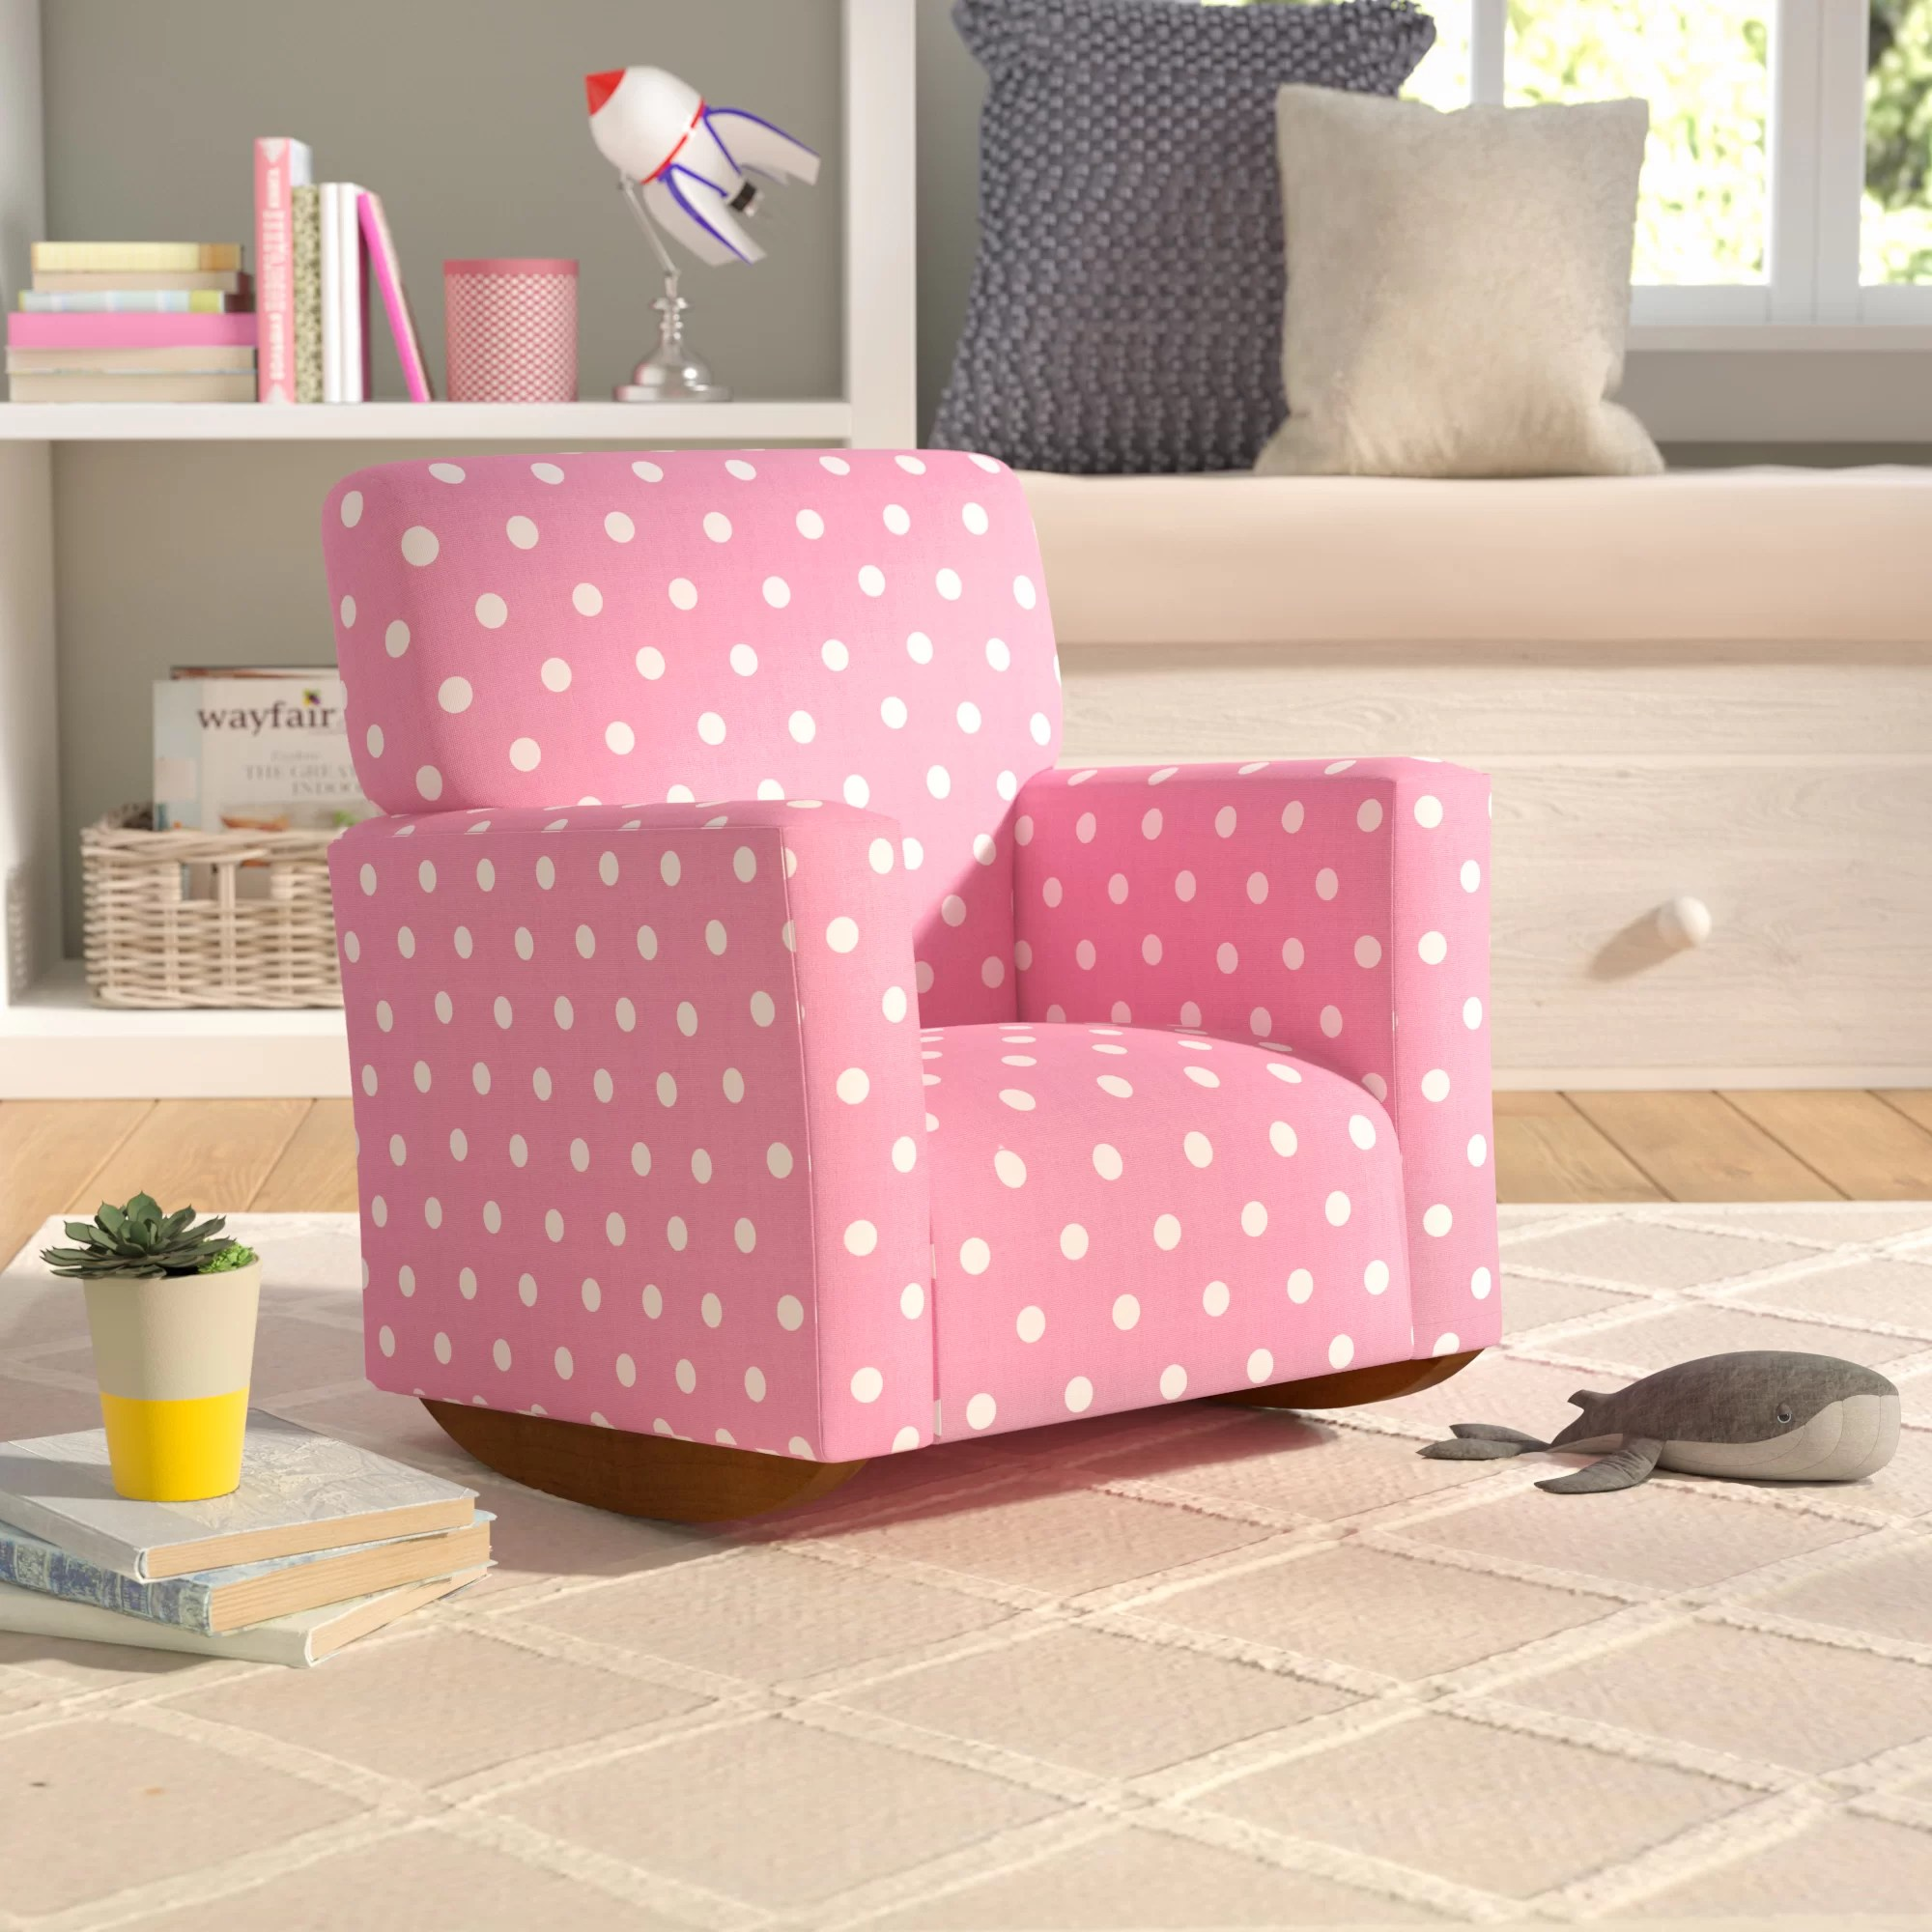 polka dot rocking chair cushions tempur pedic office tp8000 reviews mack milo cairo kids cotton wayfair